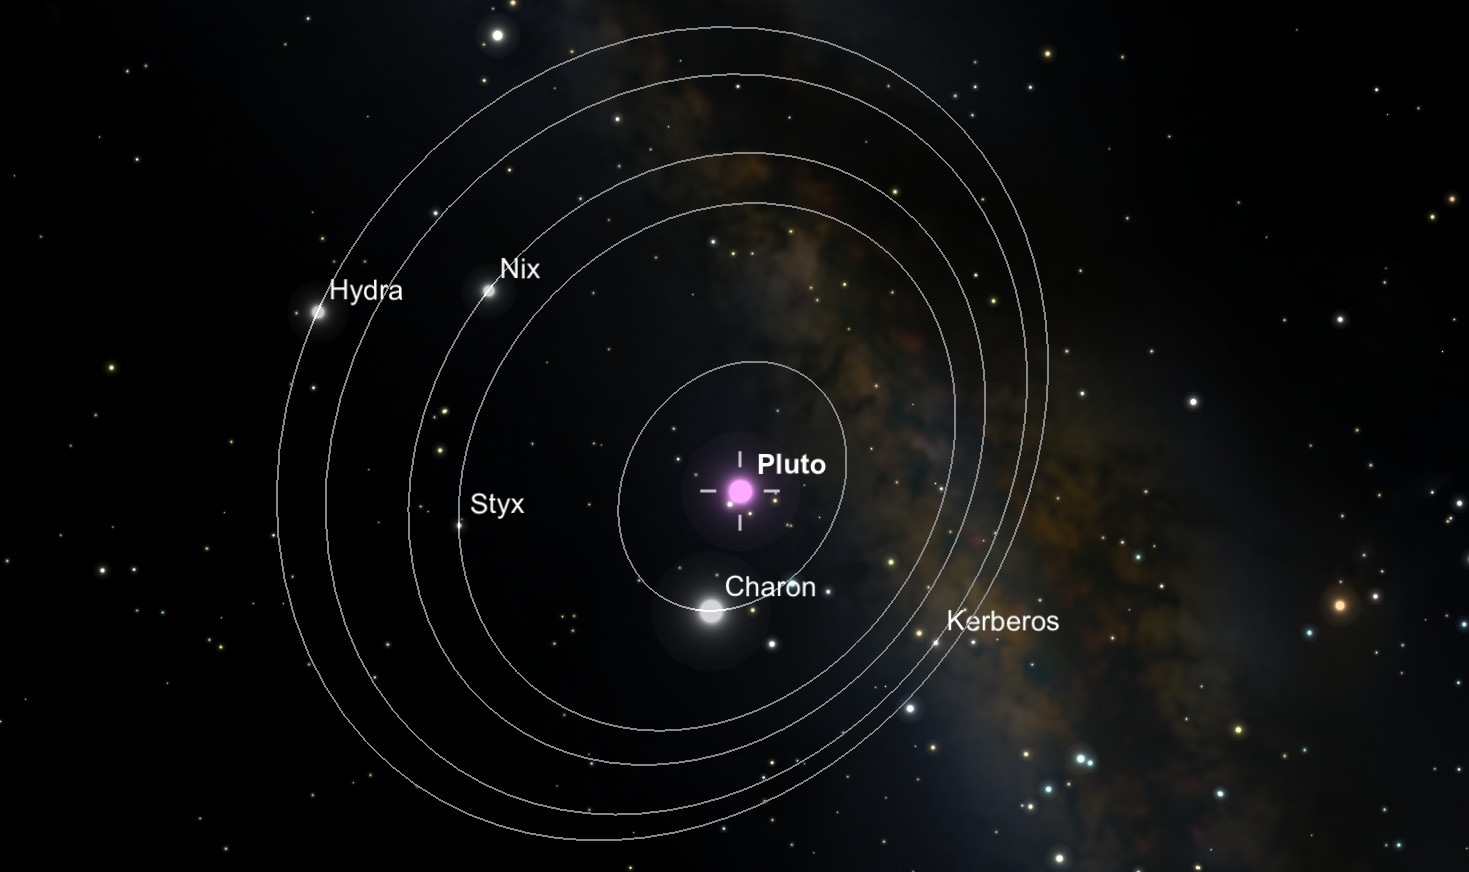 Kerberos Moon Of Plluto: Pluto Safari IOS App Lets You Experience The July Flyby